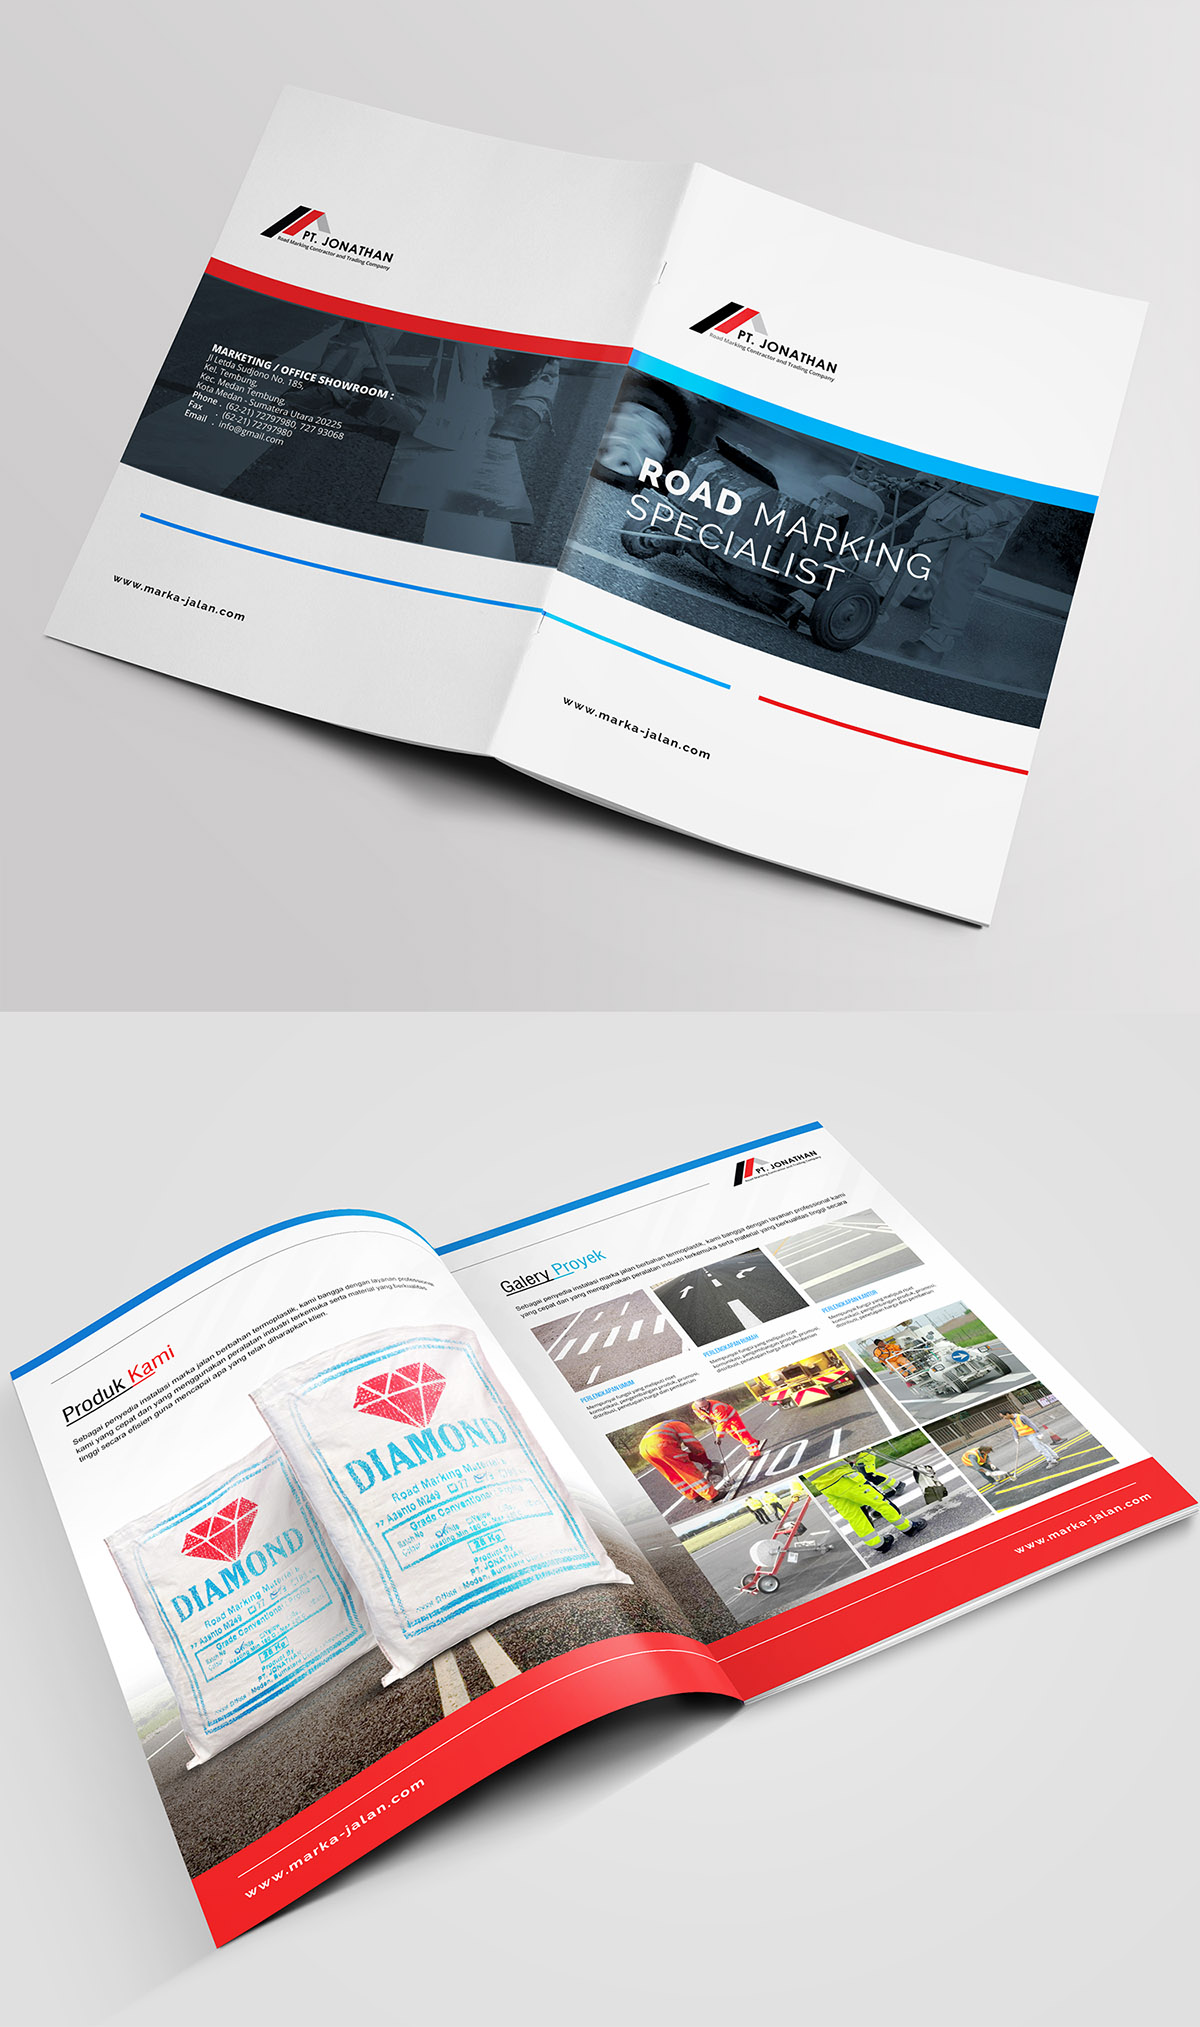 Brochure Design Services for Construction Companies